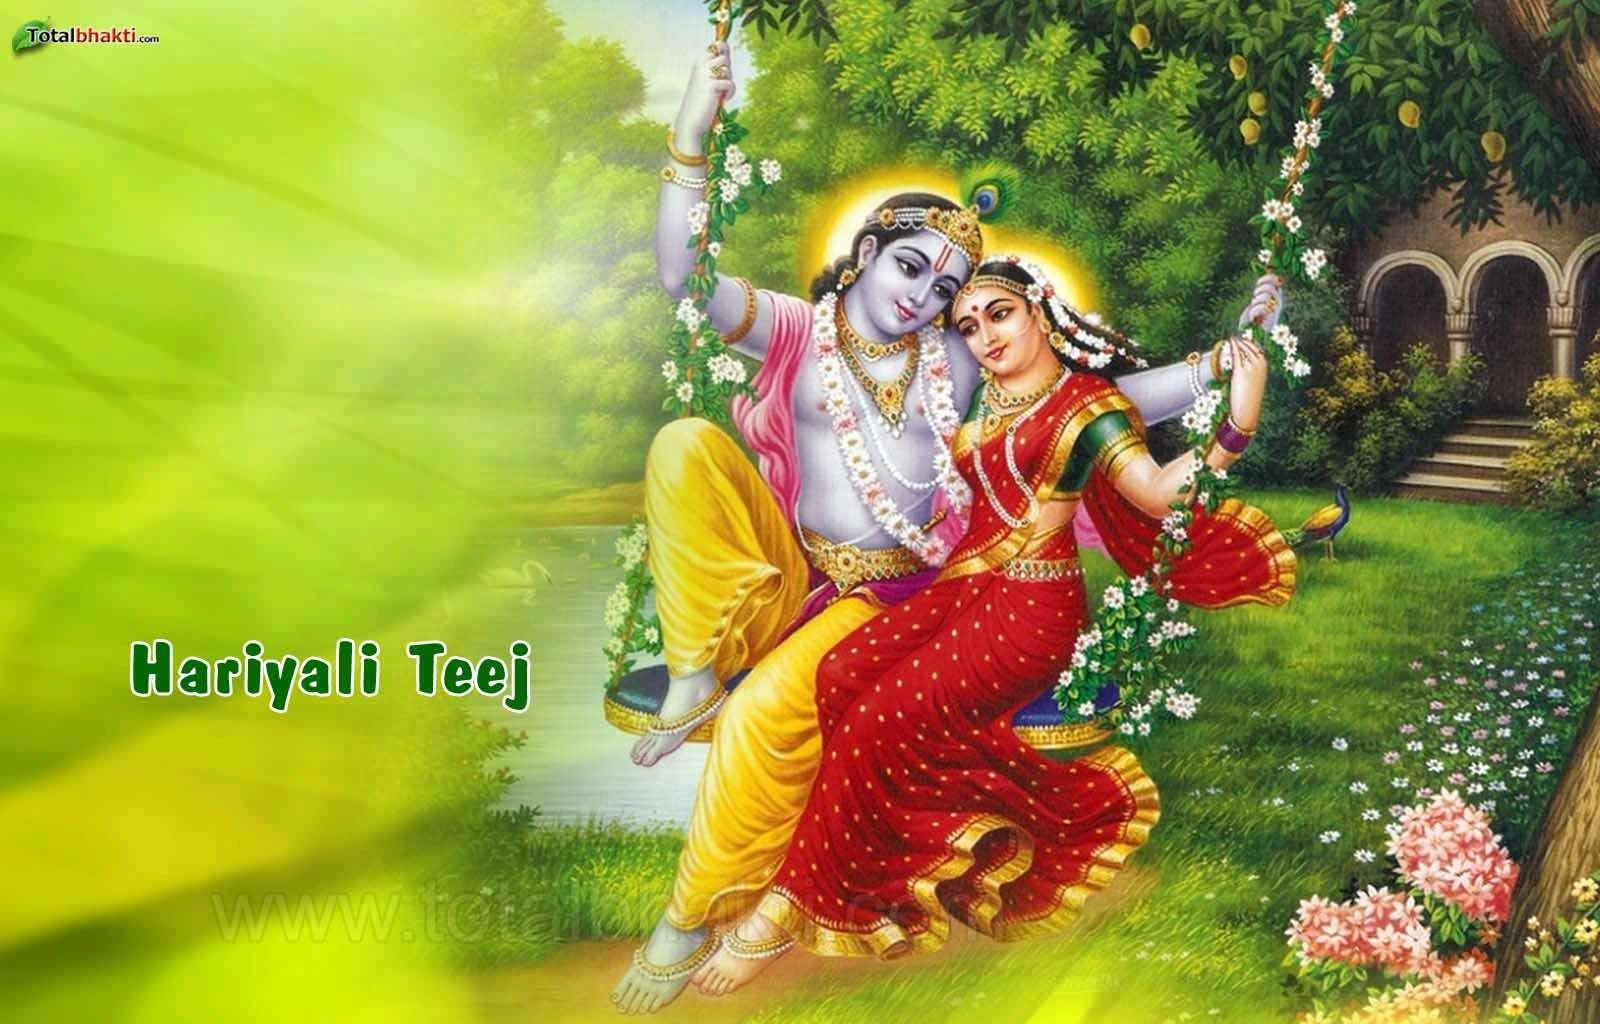 Happy Teej Celebration Images Photos